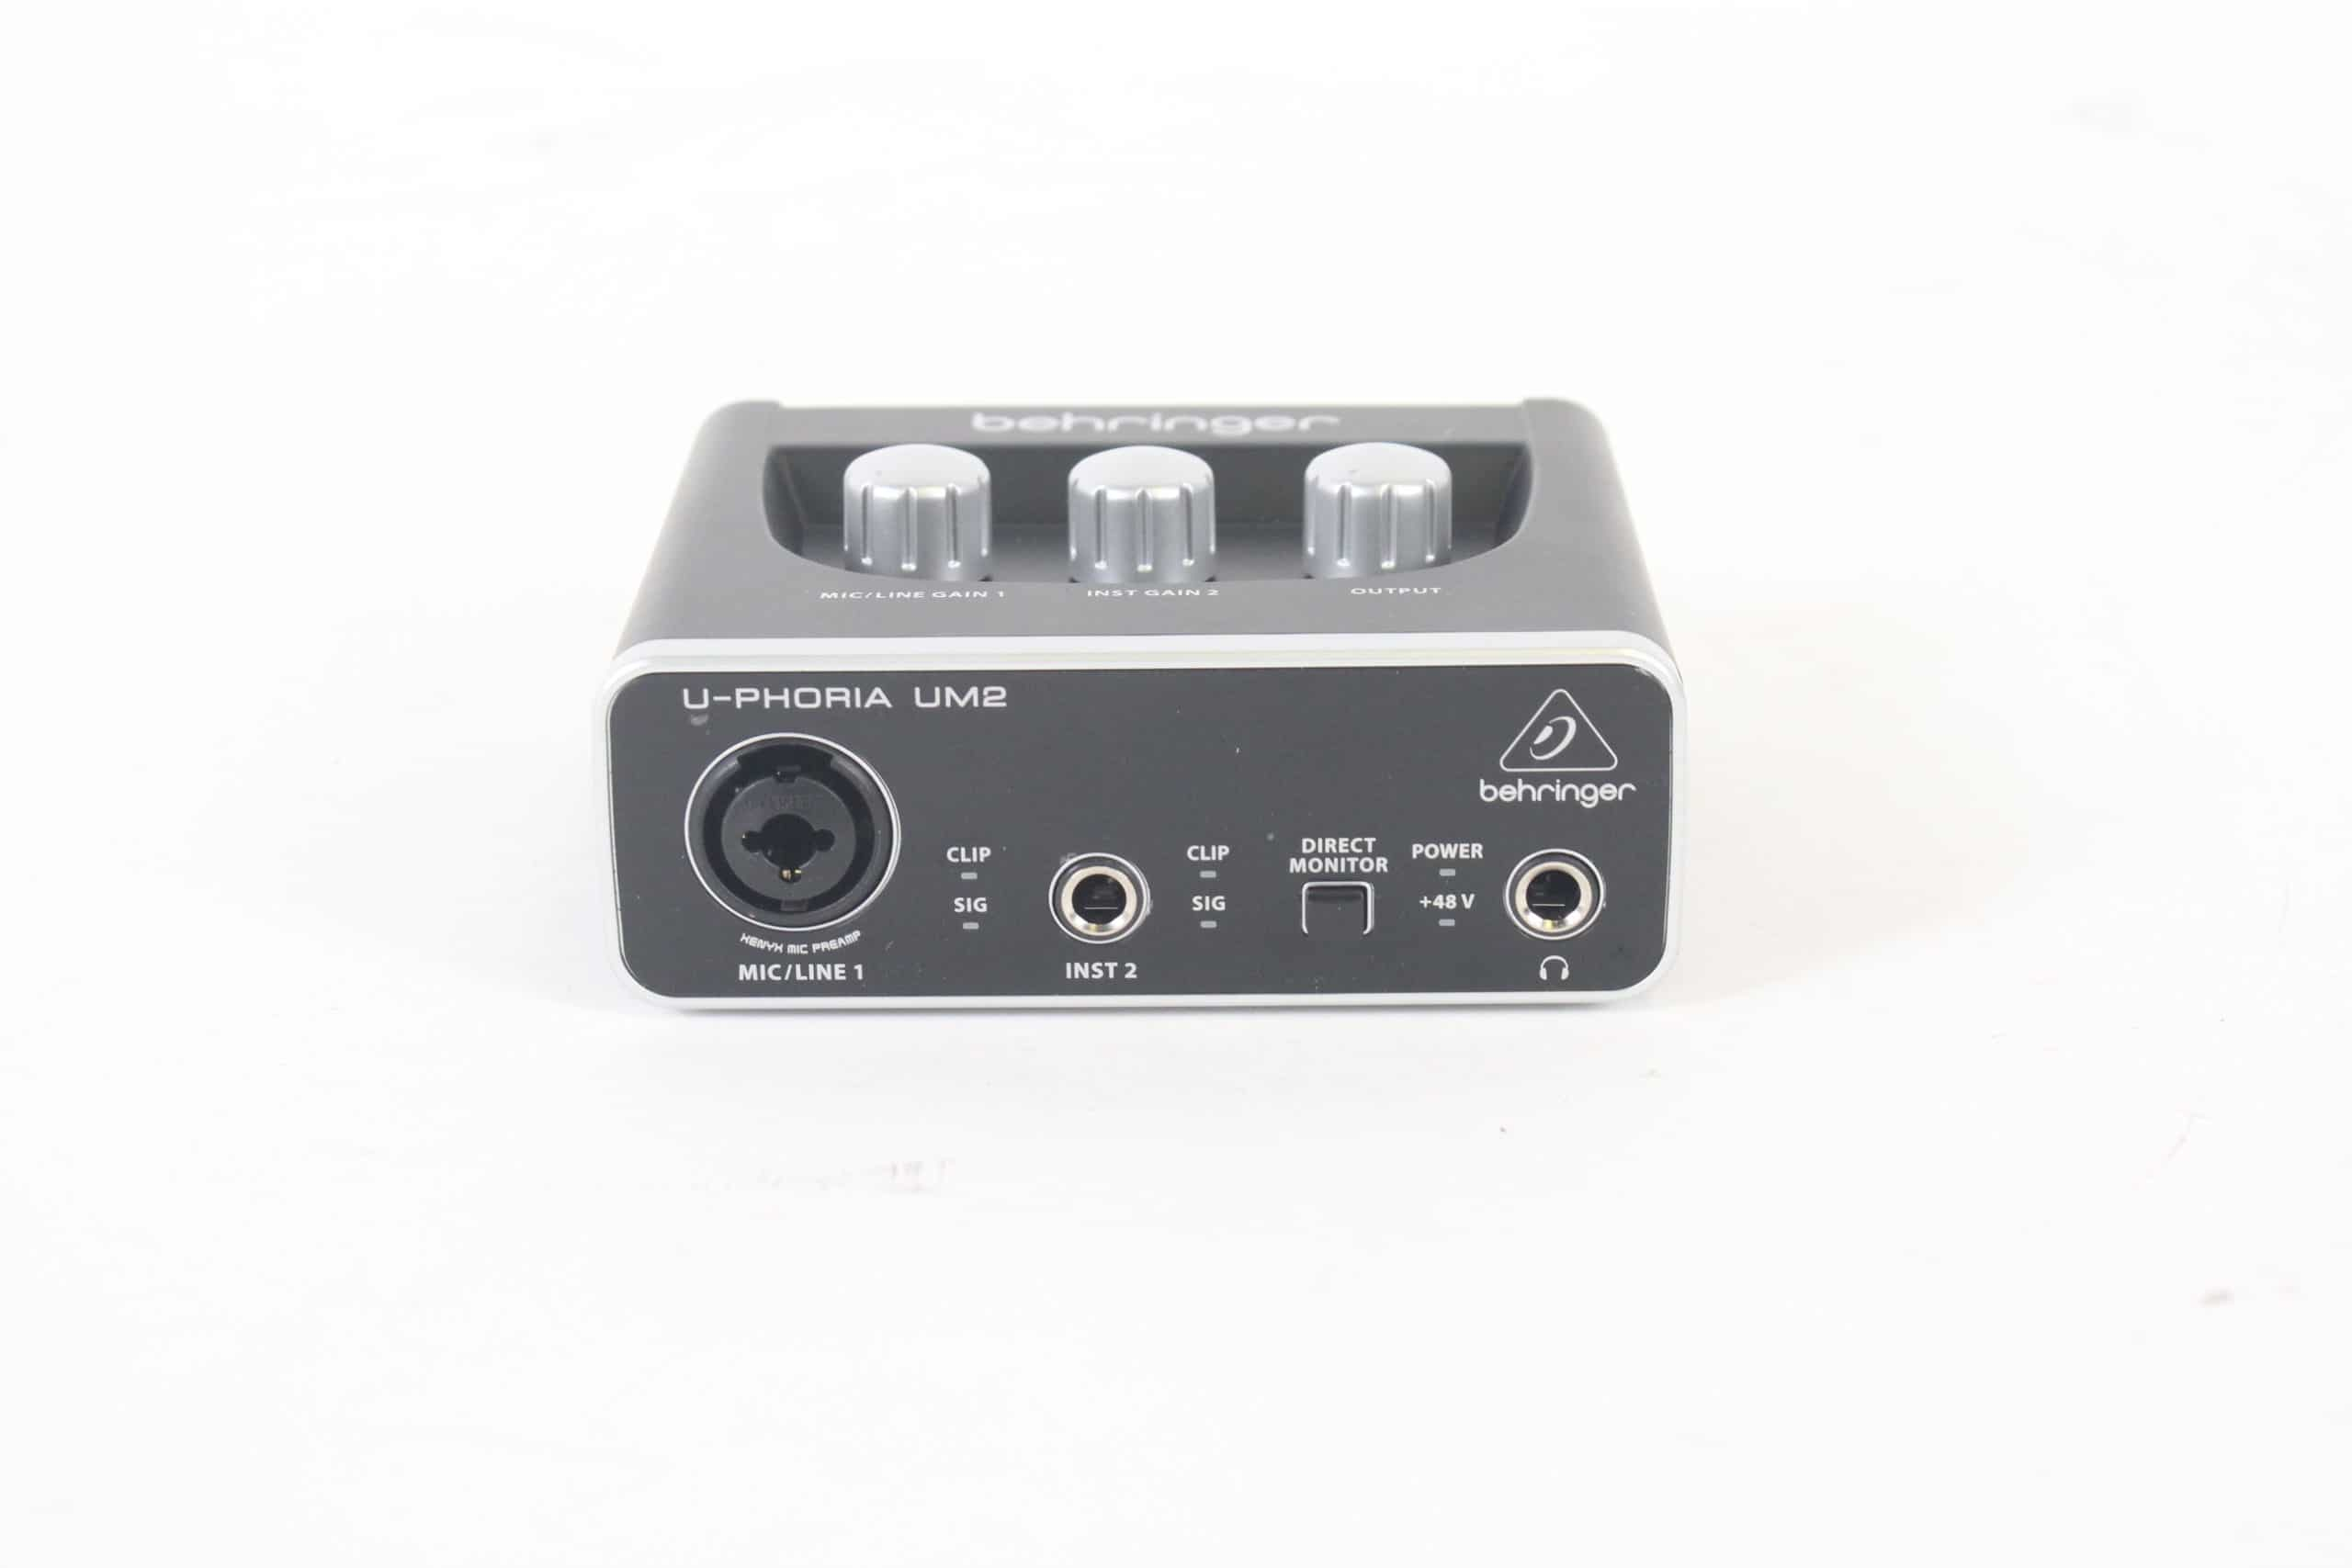 behringer-u-phoria-um2-audiophile-2x2-usb-audio-interface-with-xenyx-mic-preamplifier MAIN